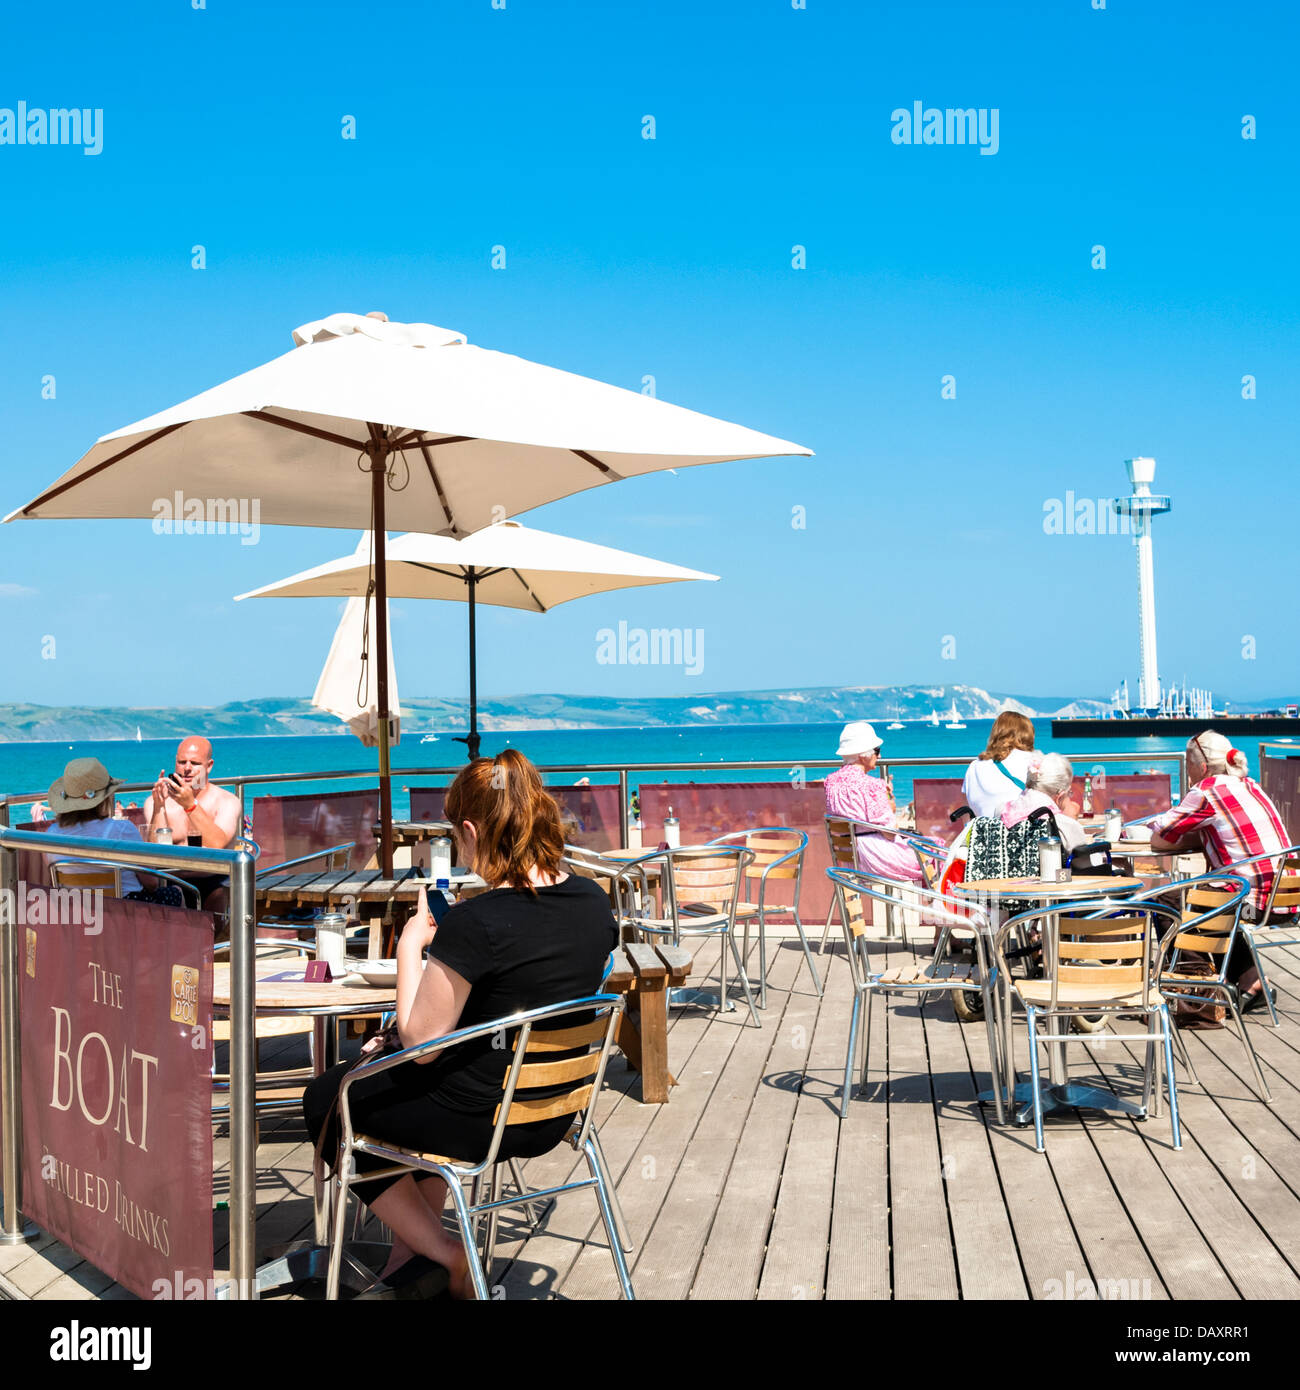 Cafe on the beach at Weymouth with the sealife tower in the background, Dorset, UK. - Stock Image